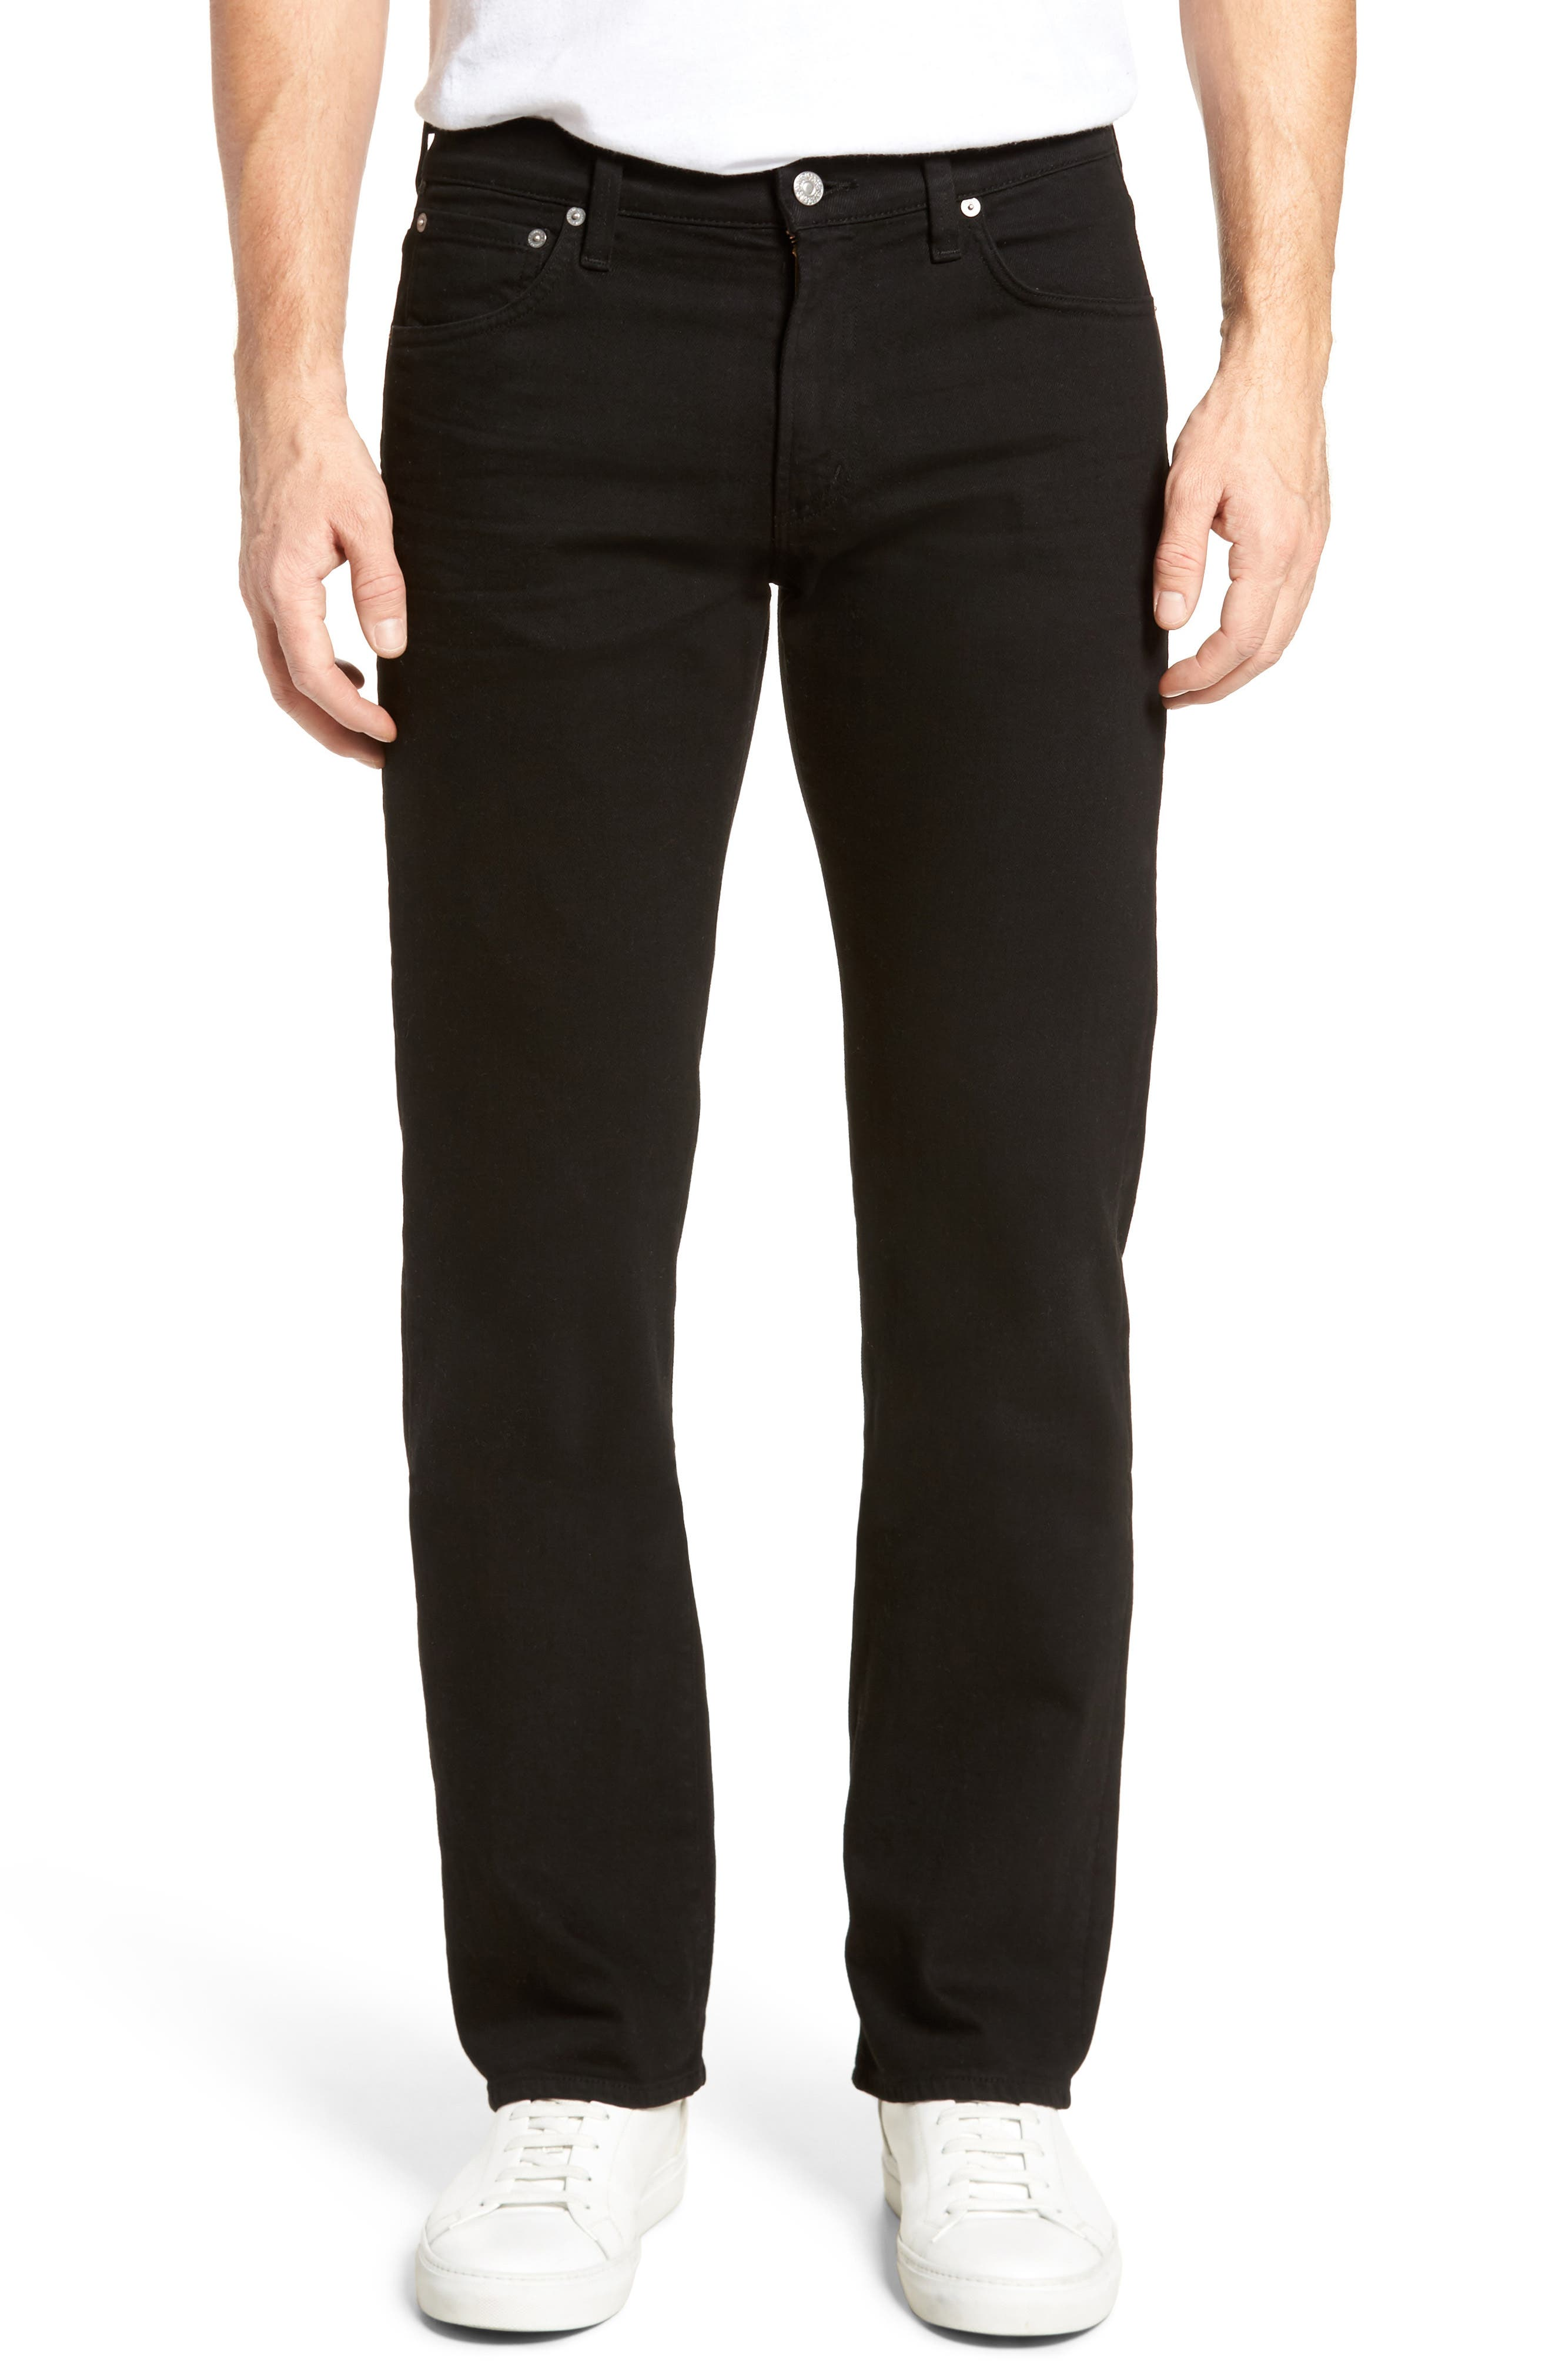 Sid Straight Fit Jeans,                         Main,                         color, Black